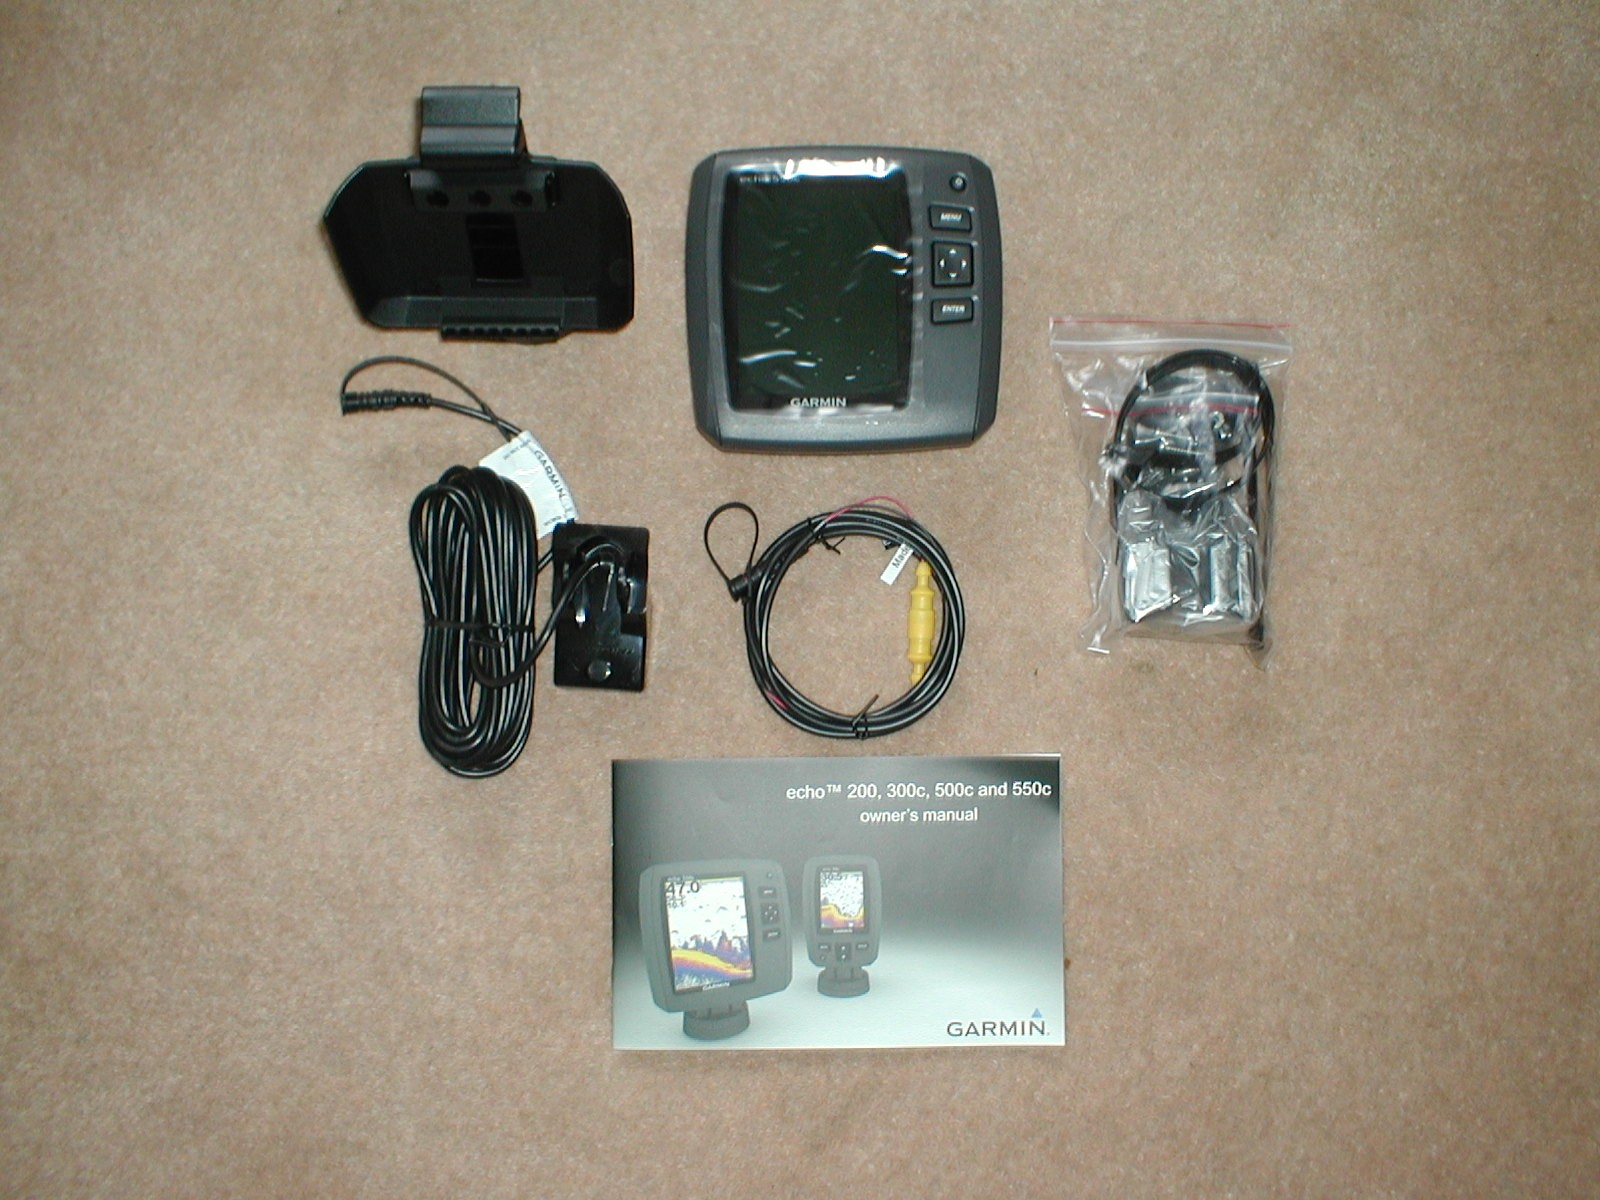 Garmin Striker Plus 4cv Wiring Diagram A947b6 Garmin Fishfinder with Gps Wiring Diagram Of Garmin Striker Plus 4cv Wiring Diagram